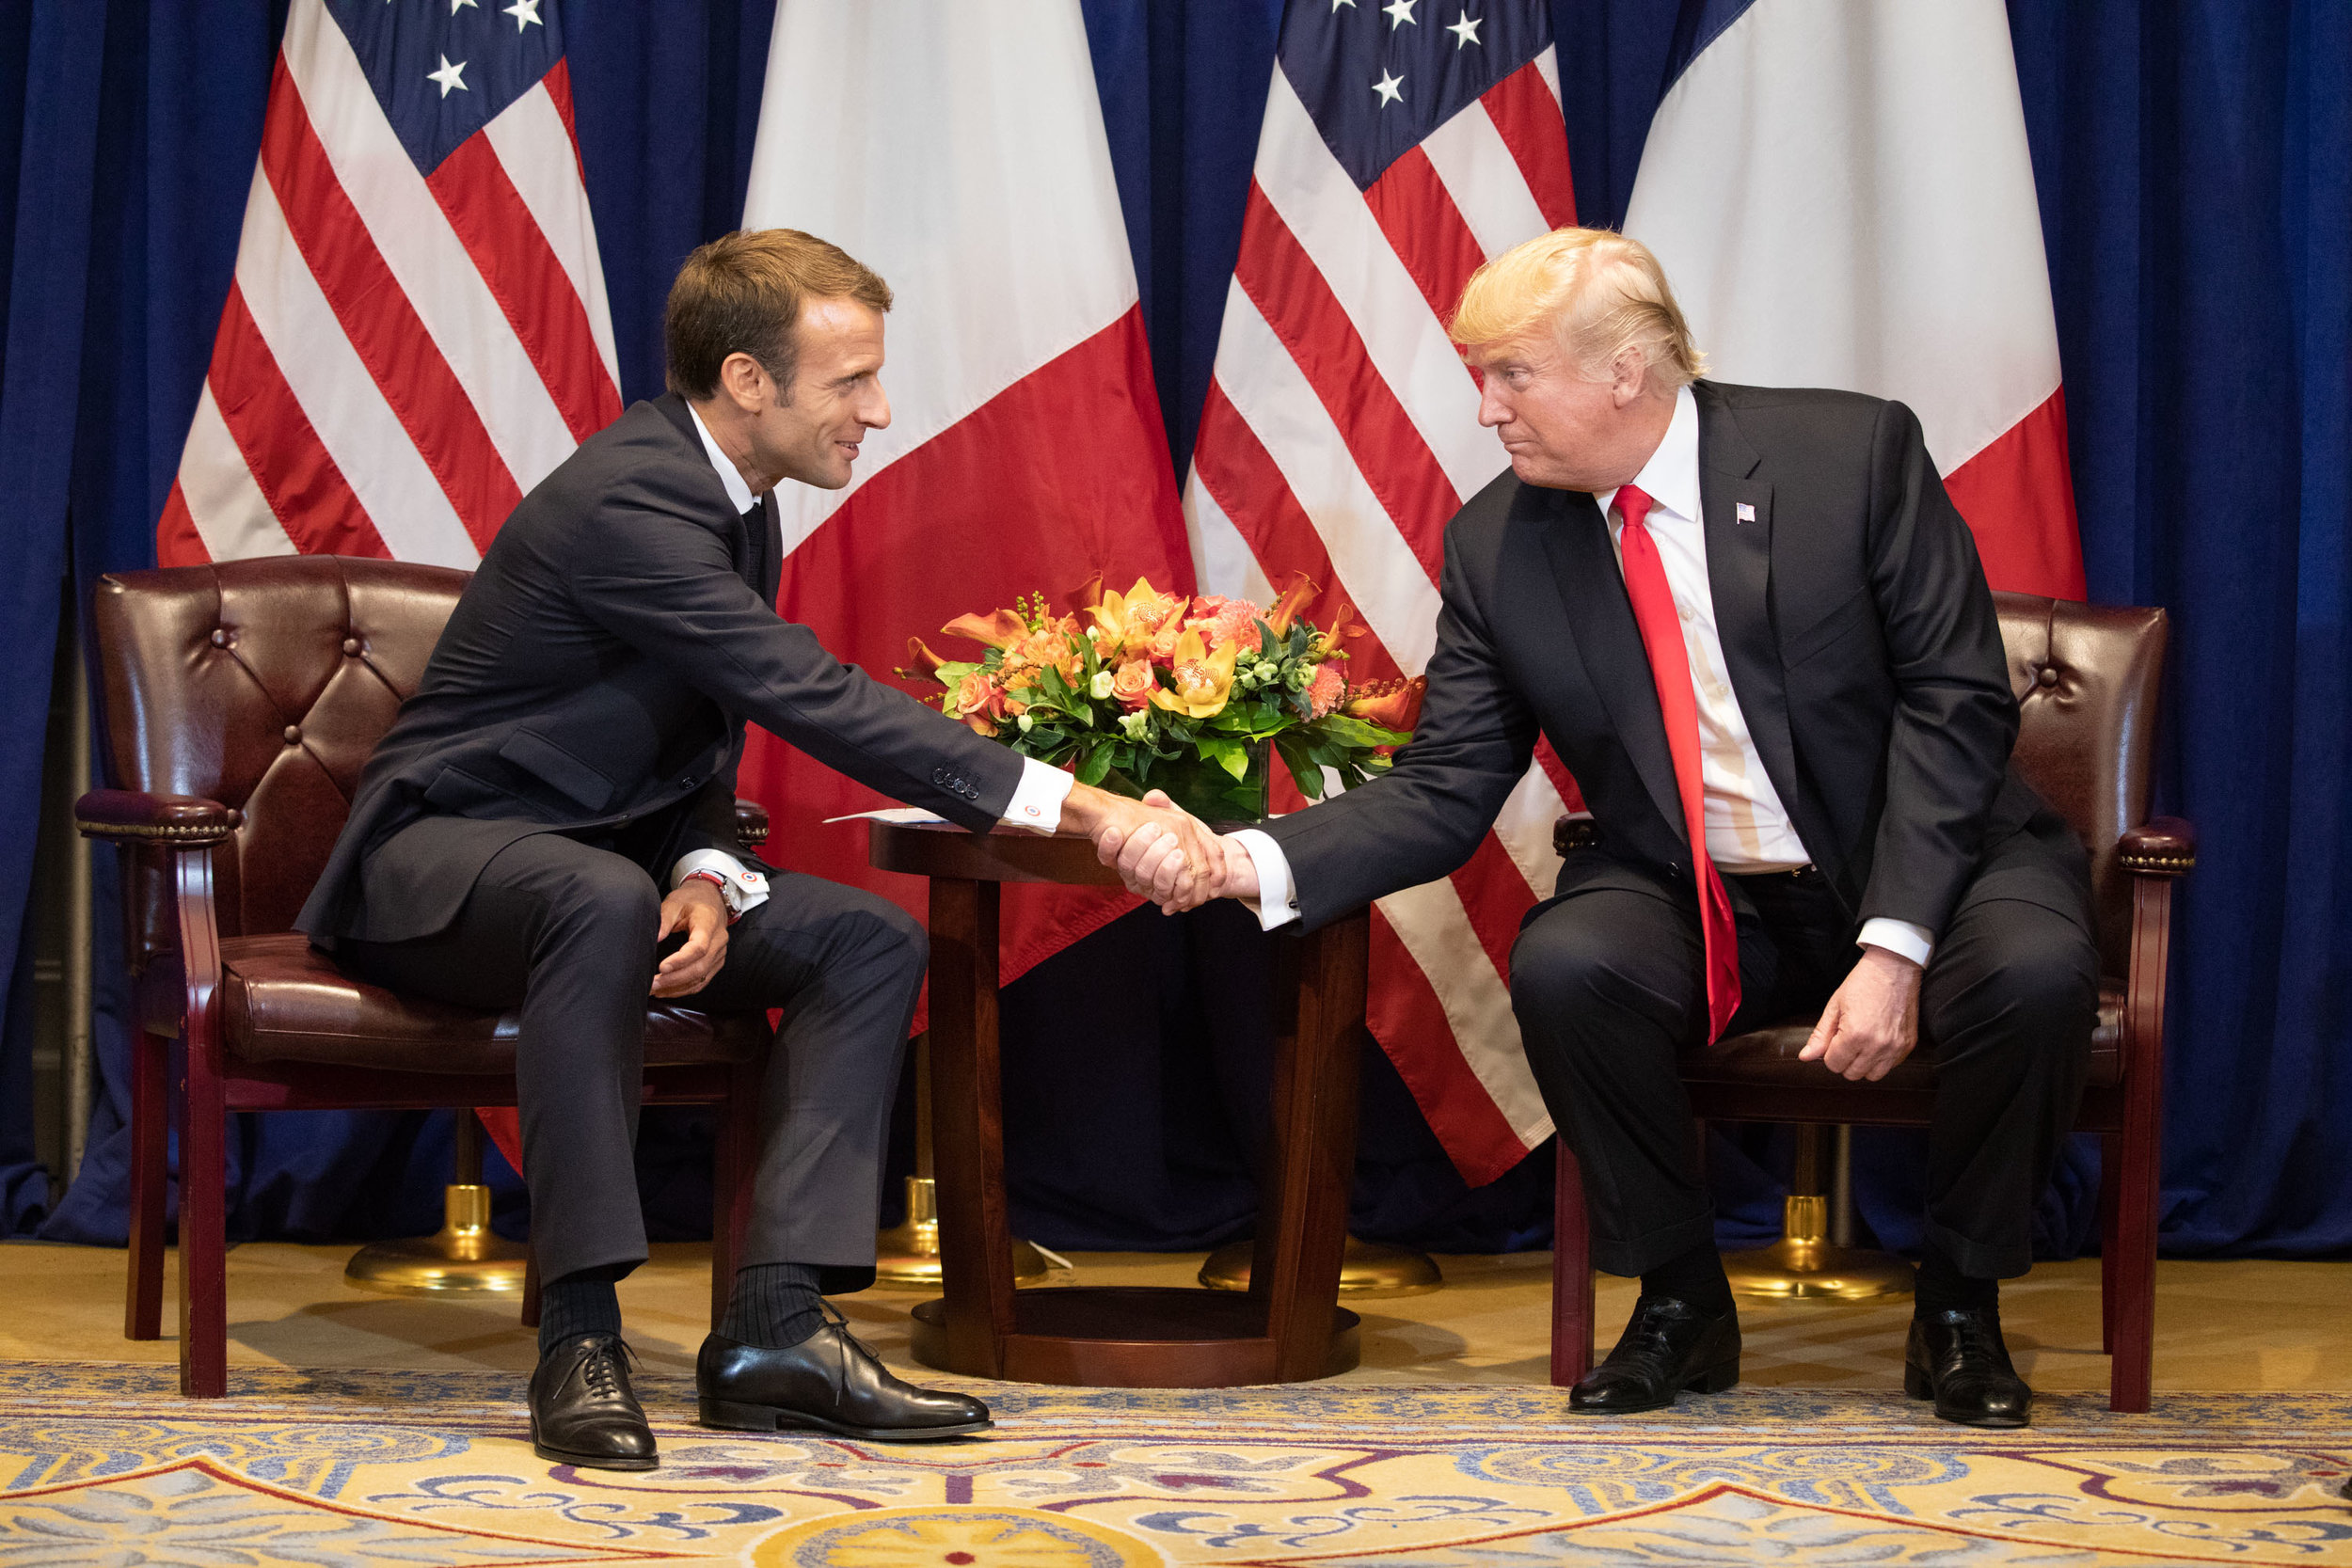 French President Emmanuel Macron and American President Donald J. Trump in happier times only months ago at the United Nations General Assembly. Pundits say the bromance is over, but what looked like a bromance was really just Macron taking one for the Euro team. Photograph by Shealah Craighead for the White House.